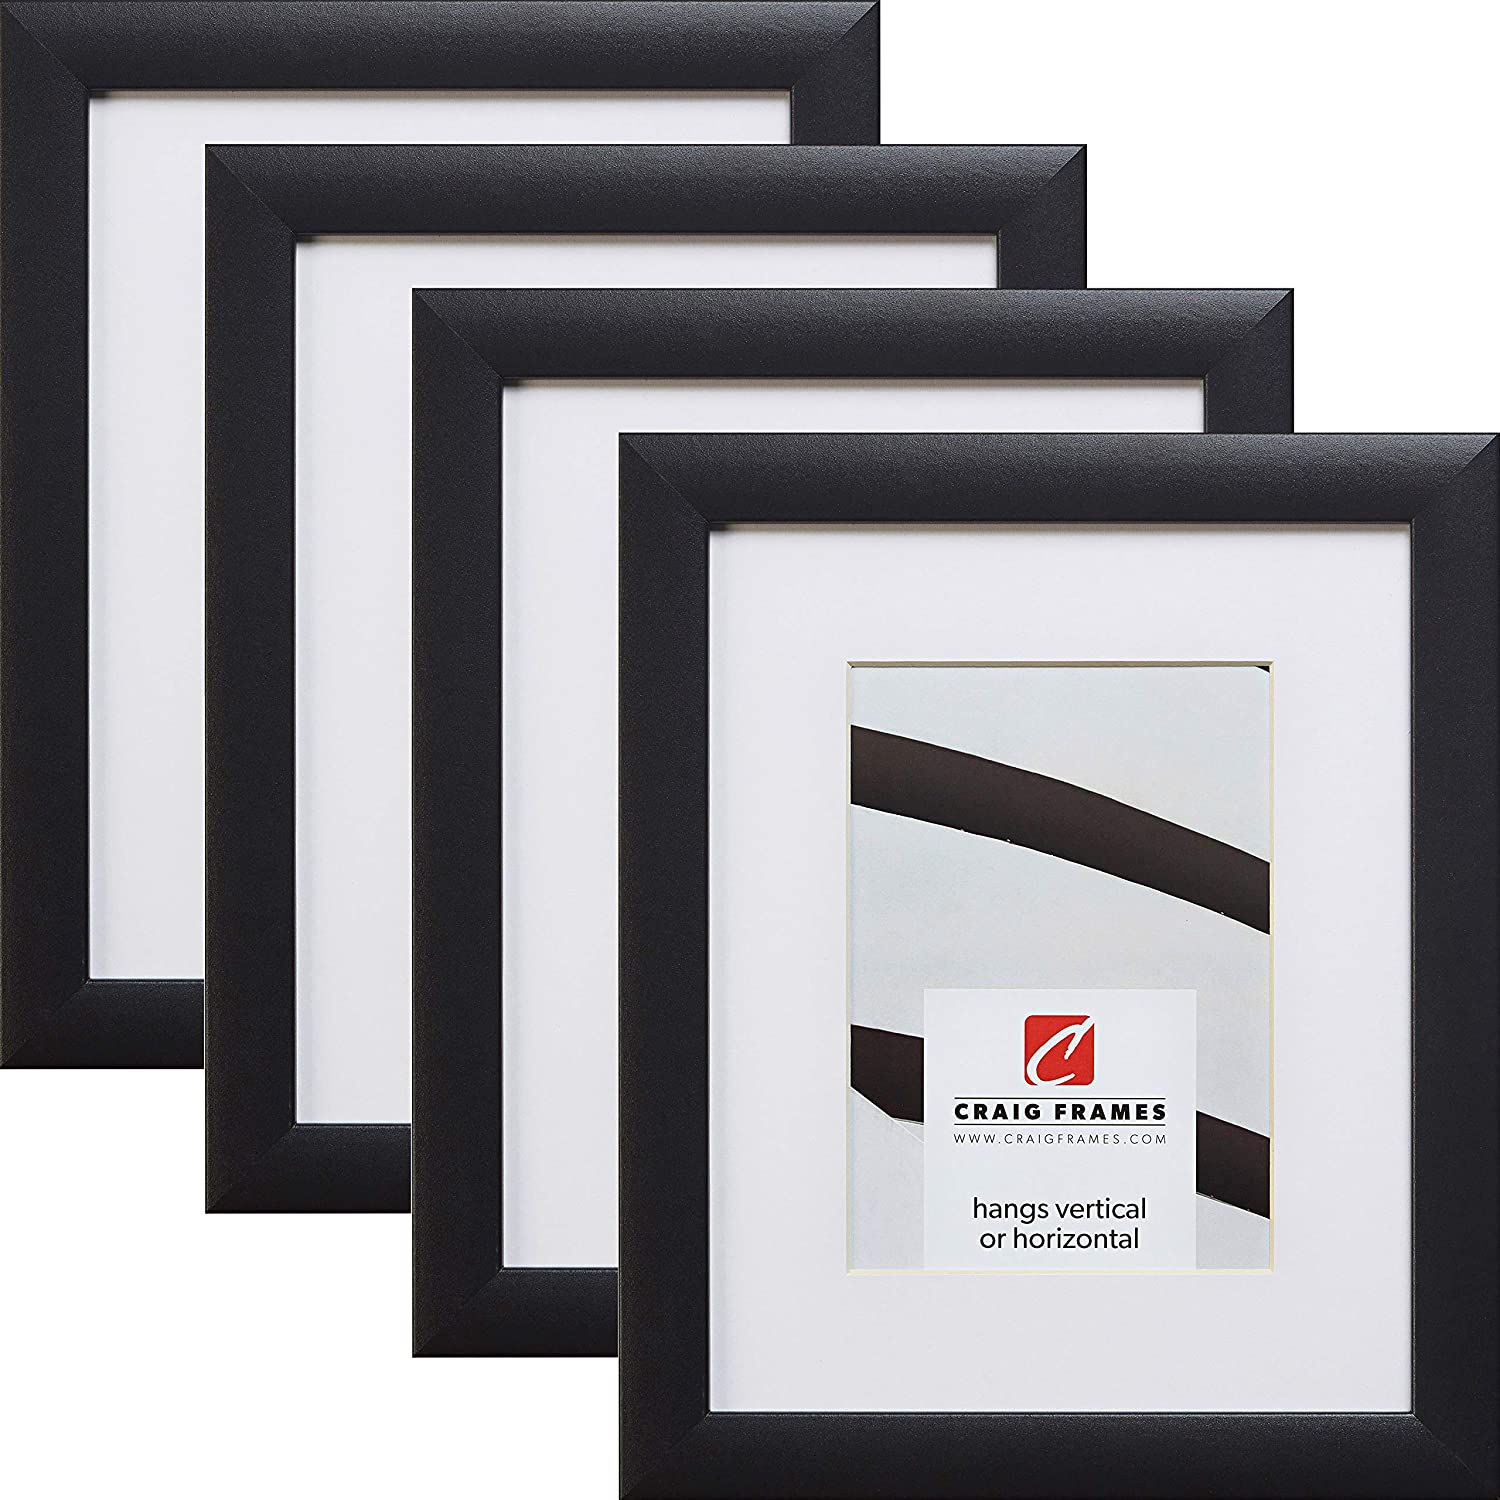 Craig Frames Contemporary, 20 x 24 Inch Black Picture Frame Matted to Display a 16 x 20 Inch Photo, Set of 4